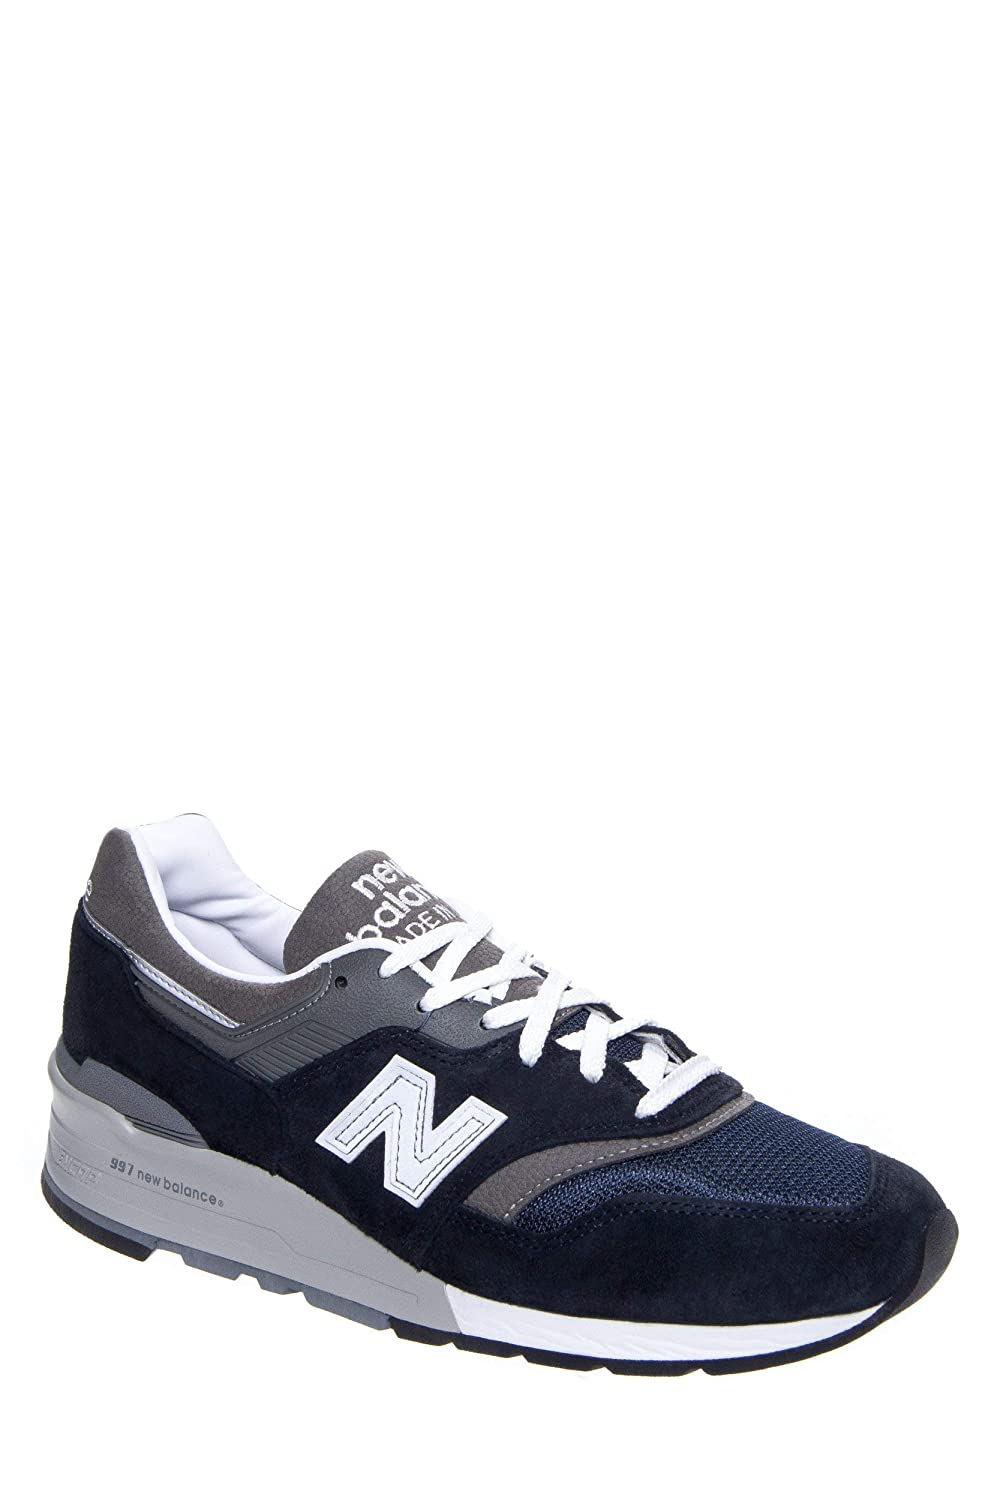 outlet store f163a 19b8d New Balance 997 (Made in USA)